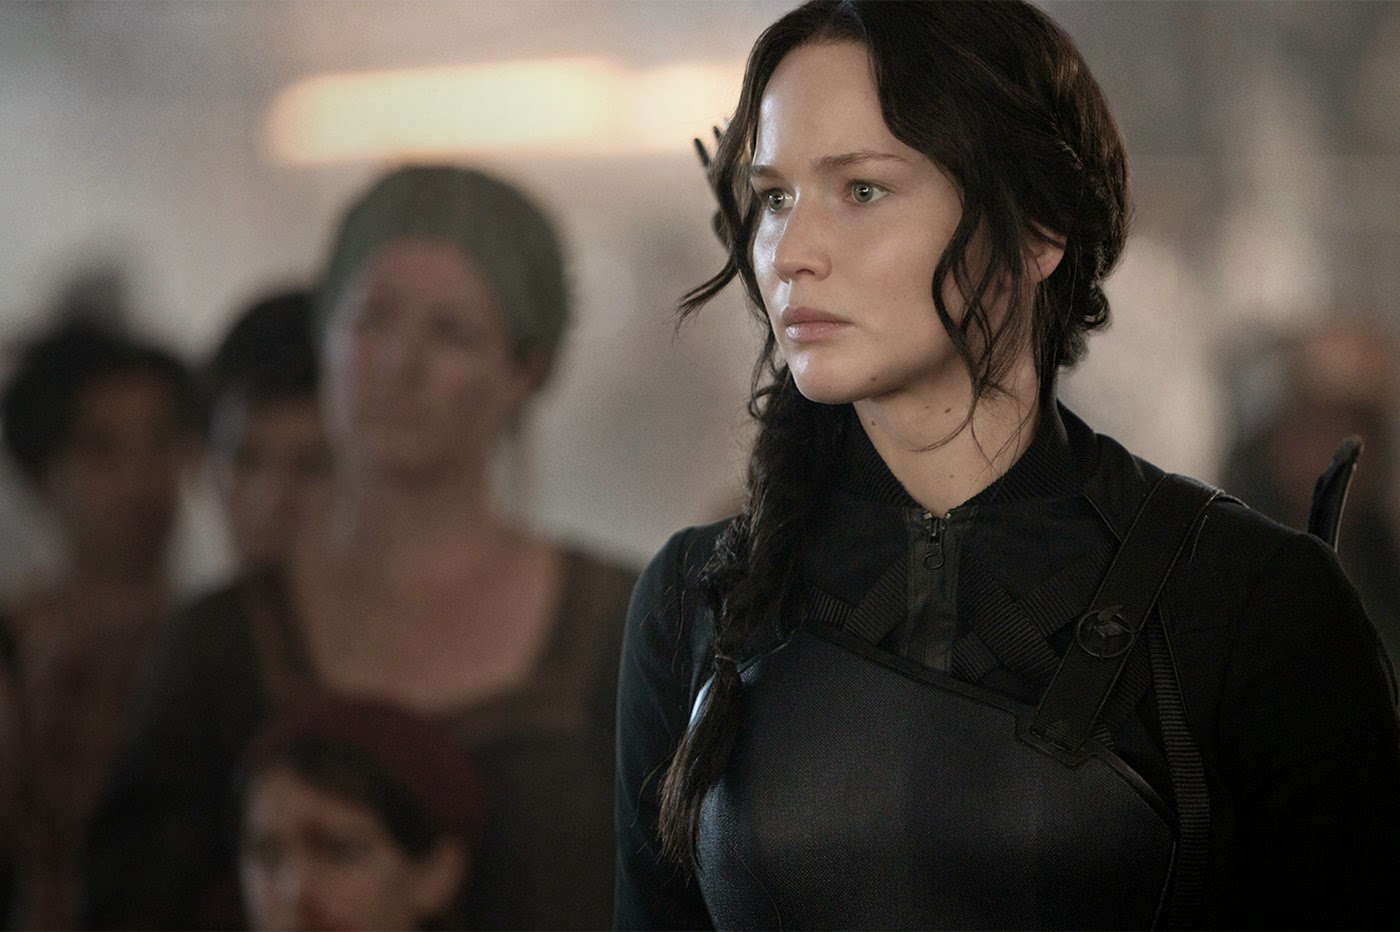 Jennifer Lawrence in The Hunger Games: Mockingjay part 1